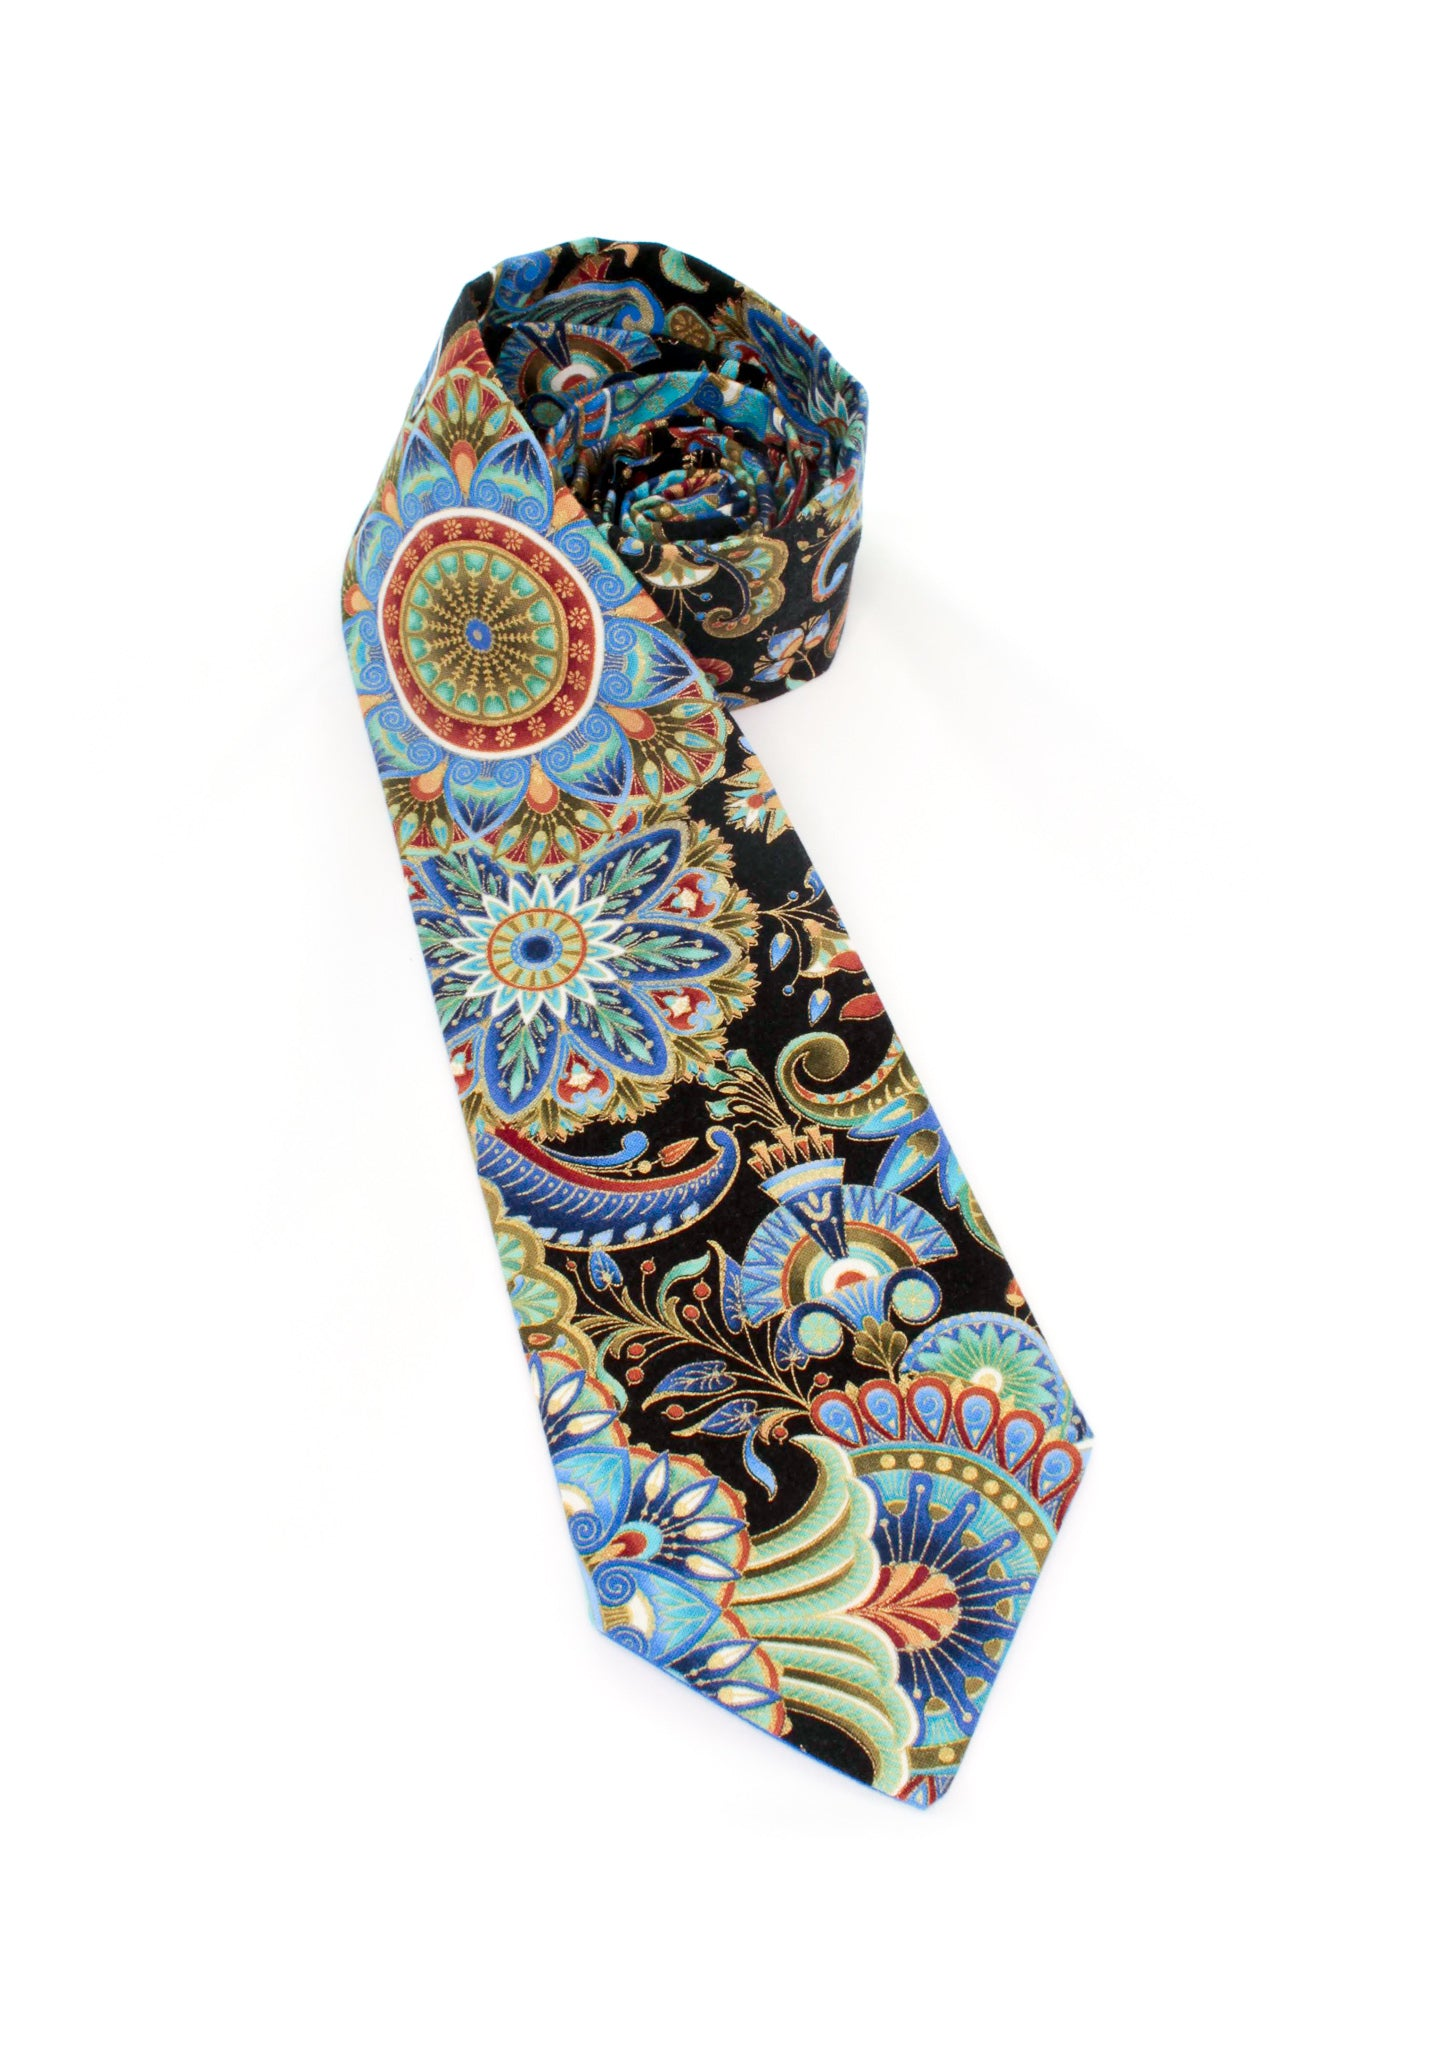 tie metallic gold black blue pattern design beautiful gift for him gift for dad necktie www.GroovyTieSquad.com